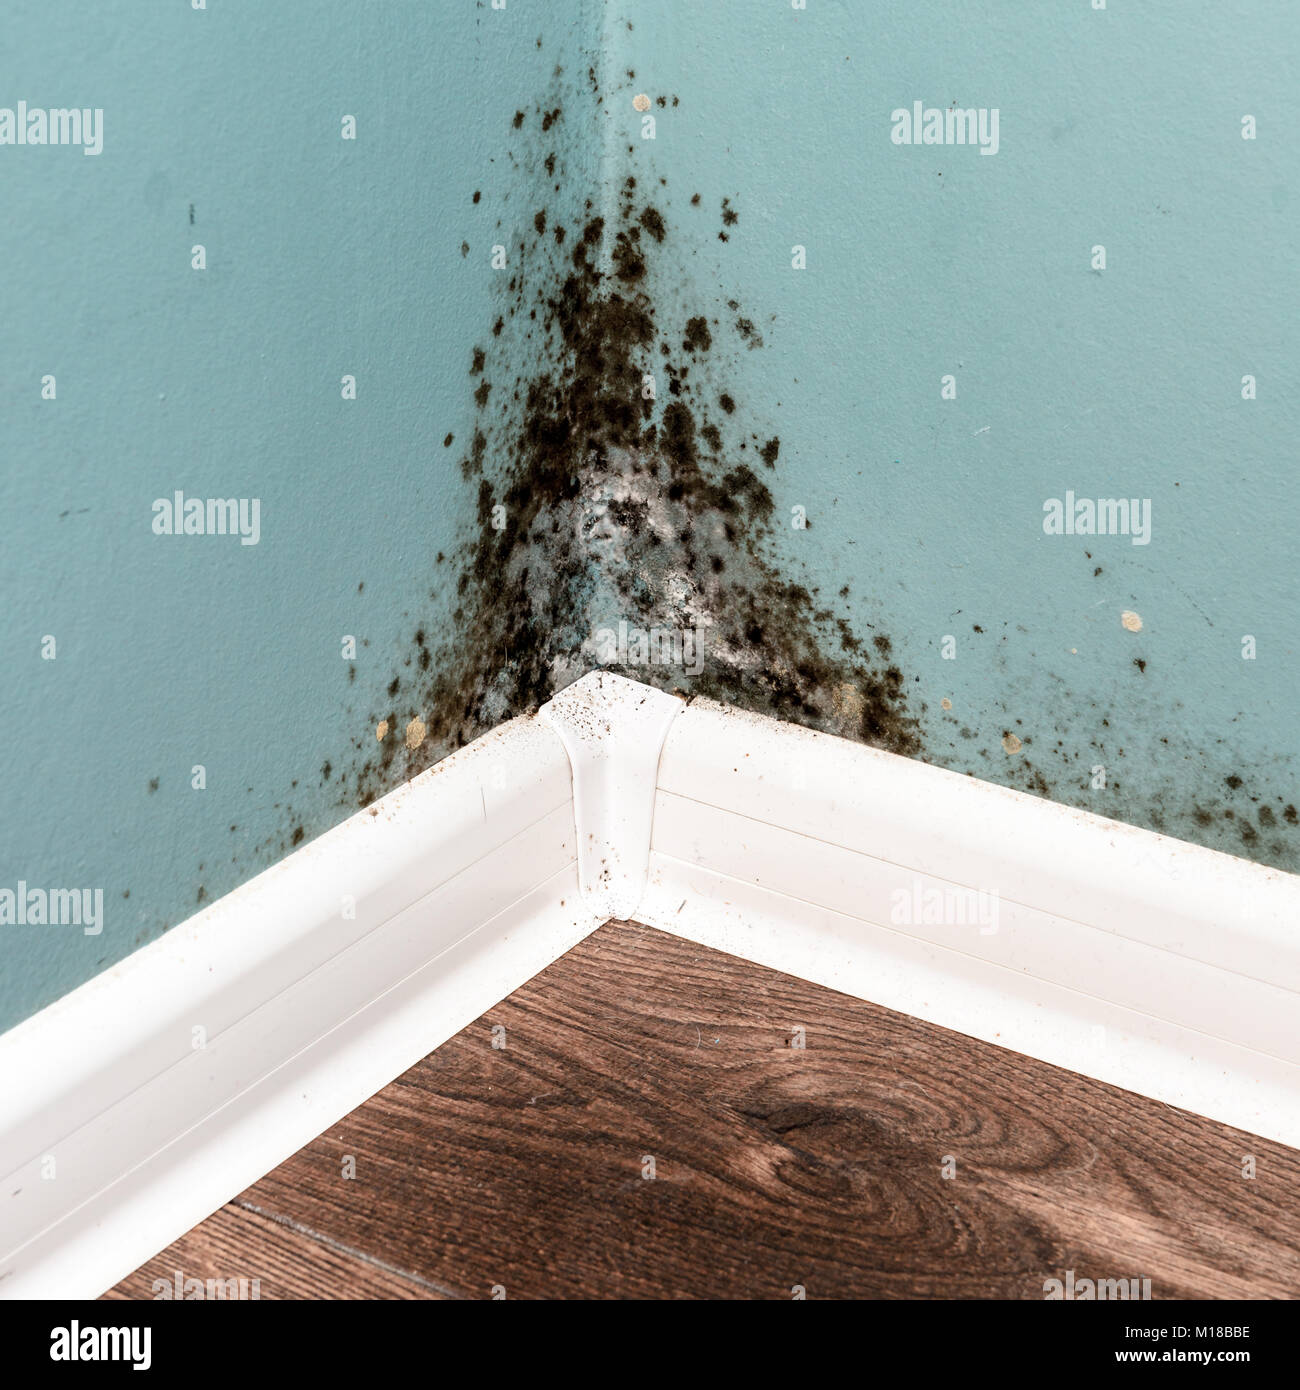 Mold In A Rented Room